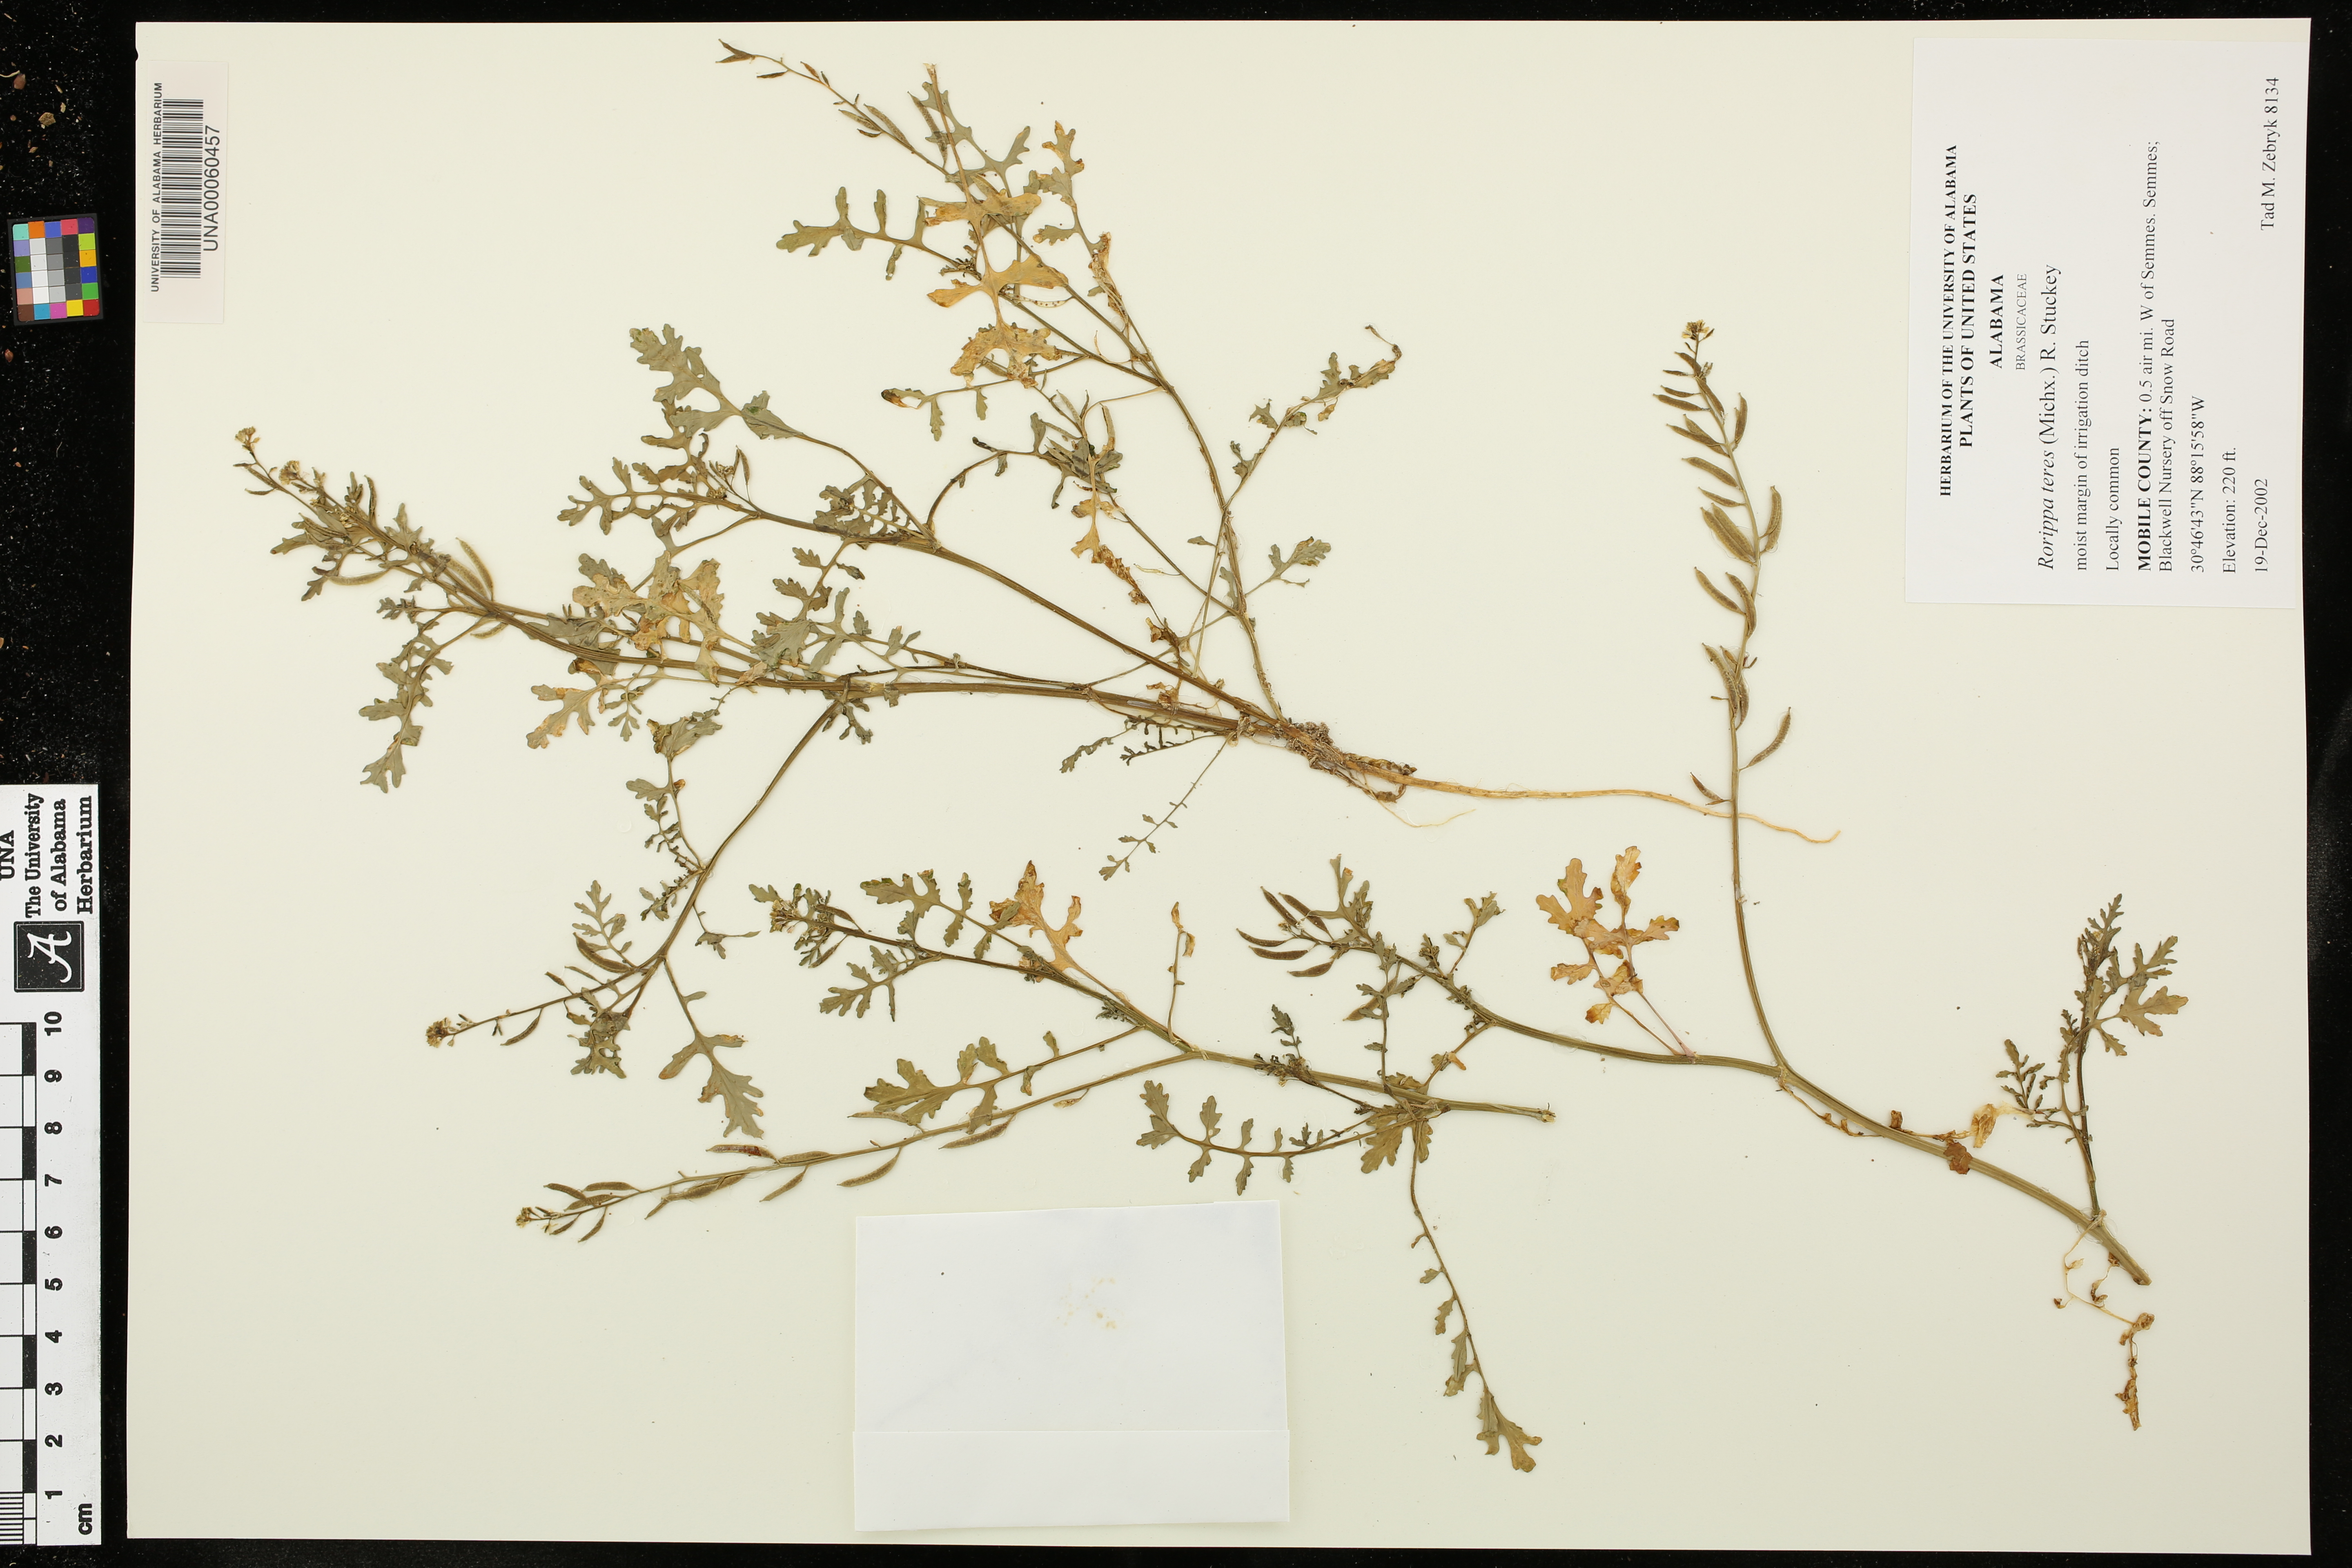 Alabama mobile county semmes - Herbarium